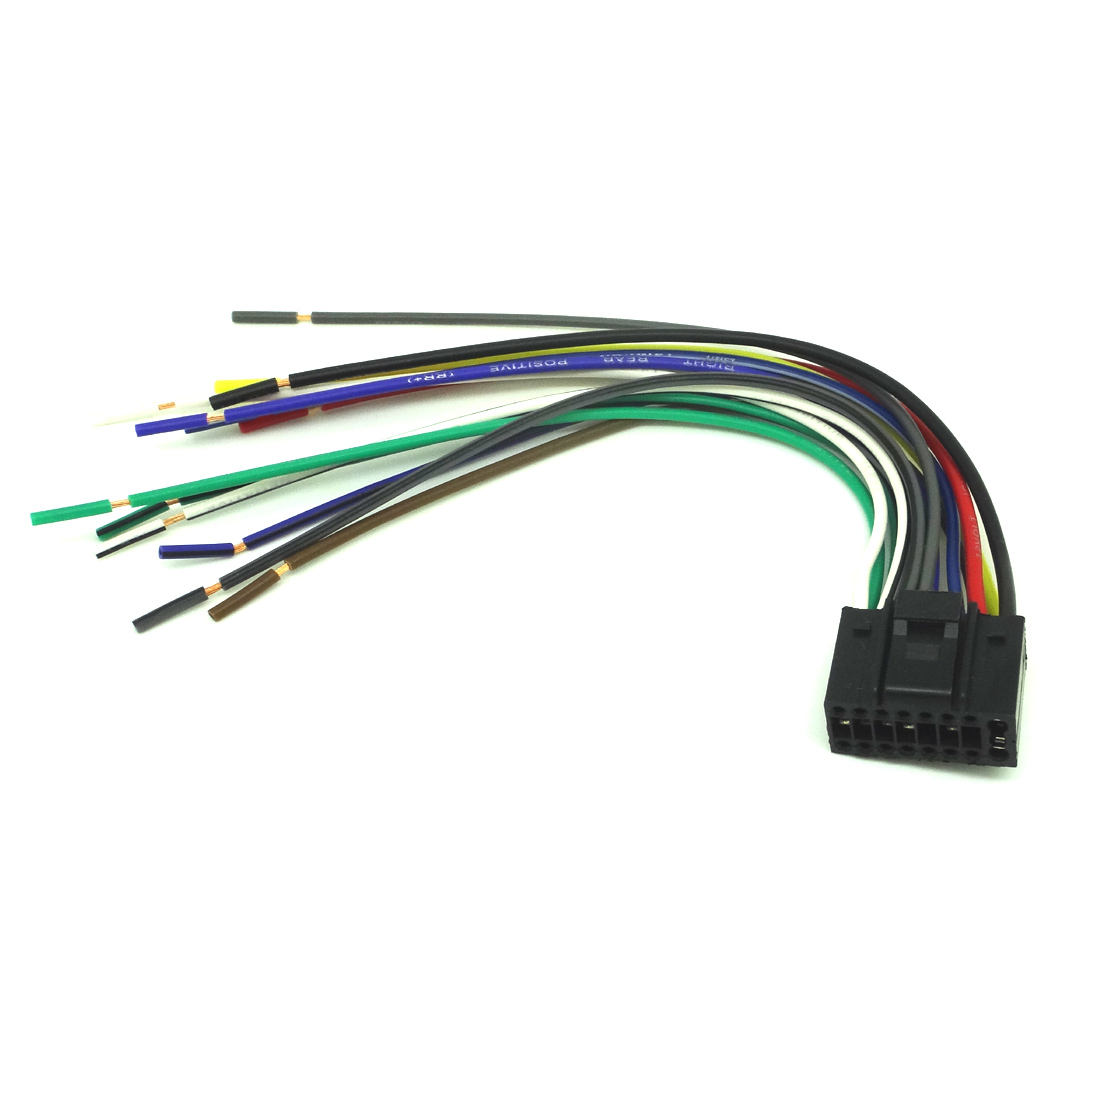 Kenwood Excelon Ddx7015 Wiring Harness 38 Diagram Images Kdc Likewise Ddx6017 Player 16 Pin Radio Car Audio Stereo Wire For Ddx770 Ddx790 Dnn770hd